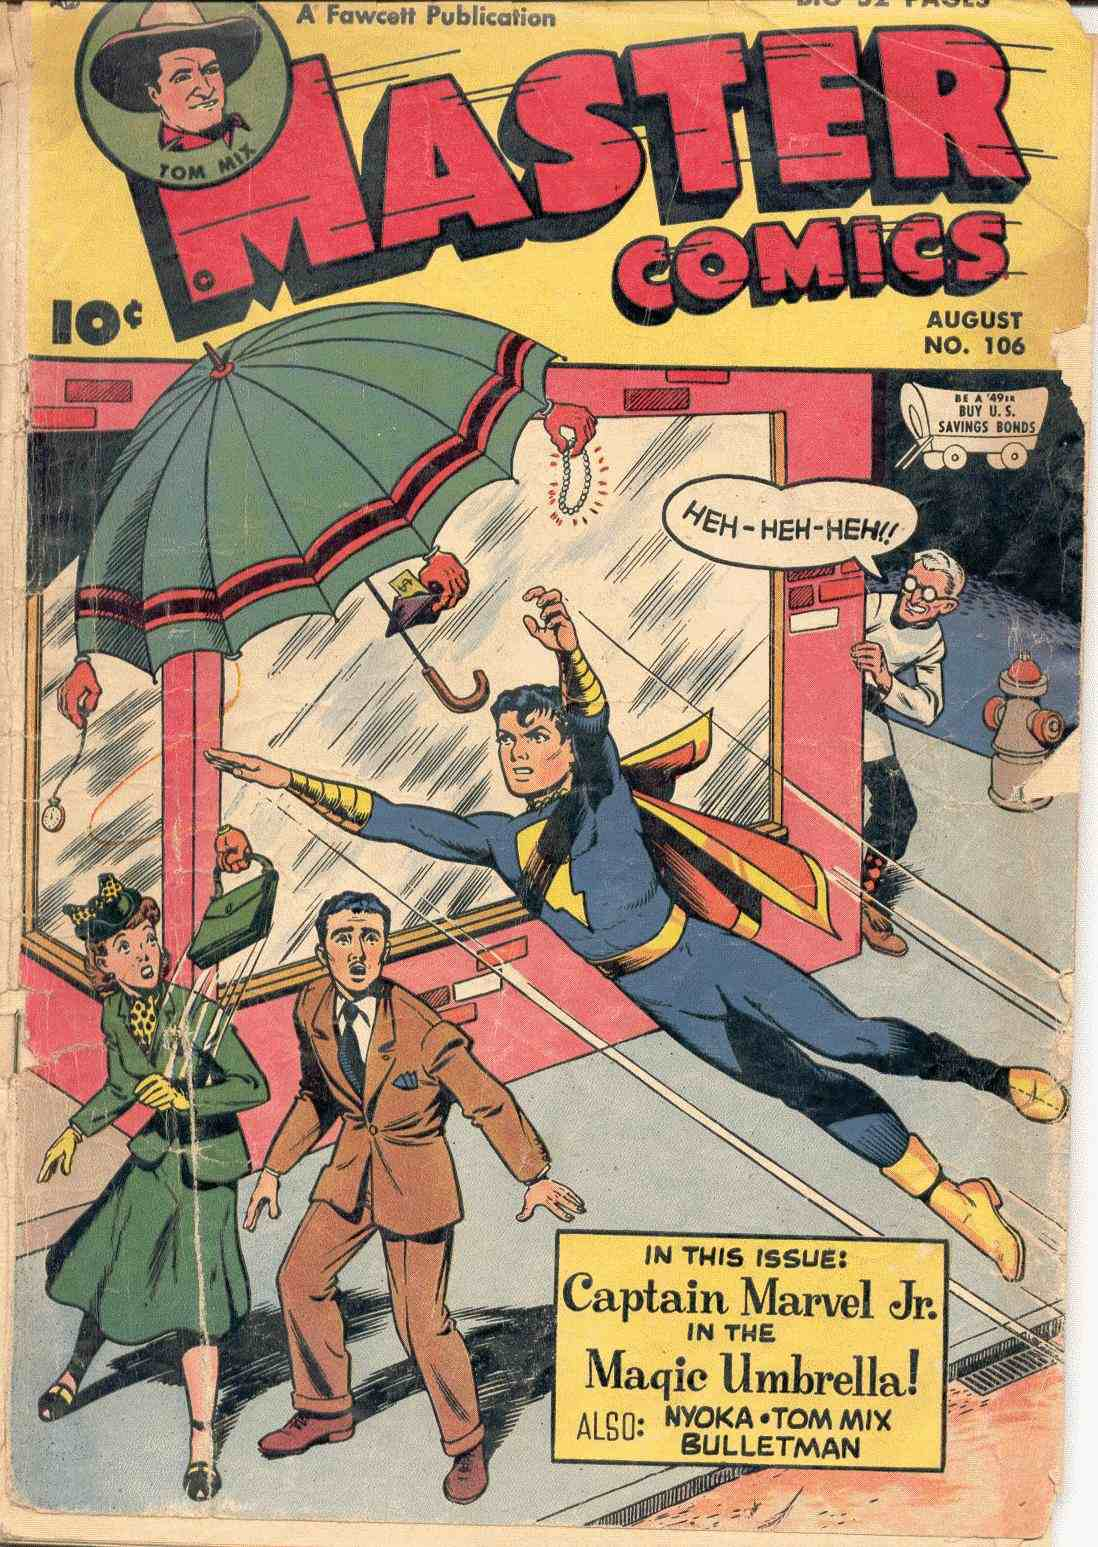 Comic Book Cover For Tom Mix stories From Fawcetts Master Comics - Volume 3